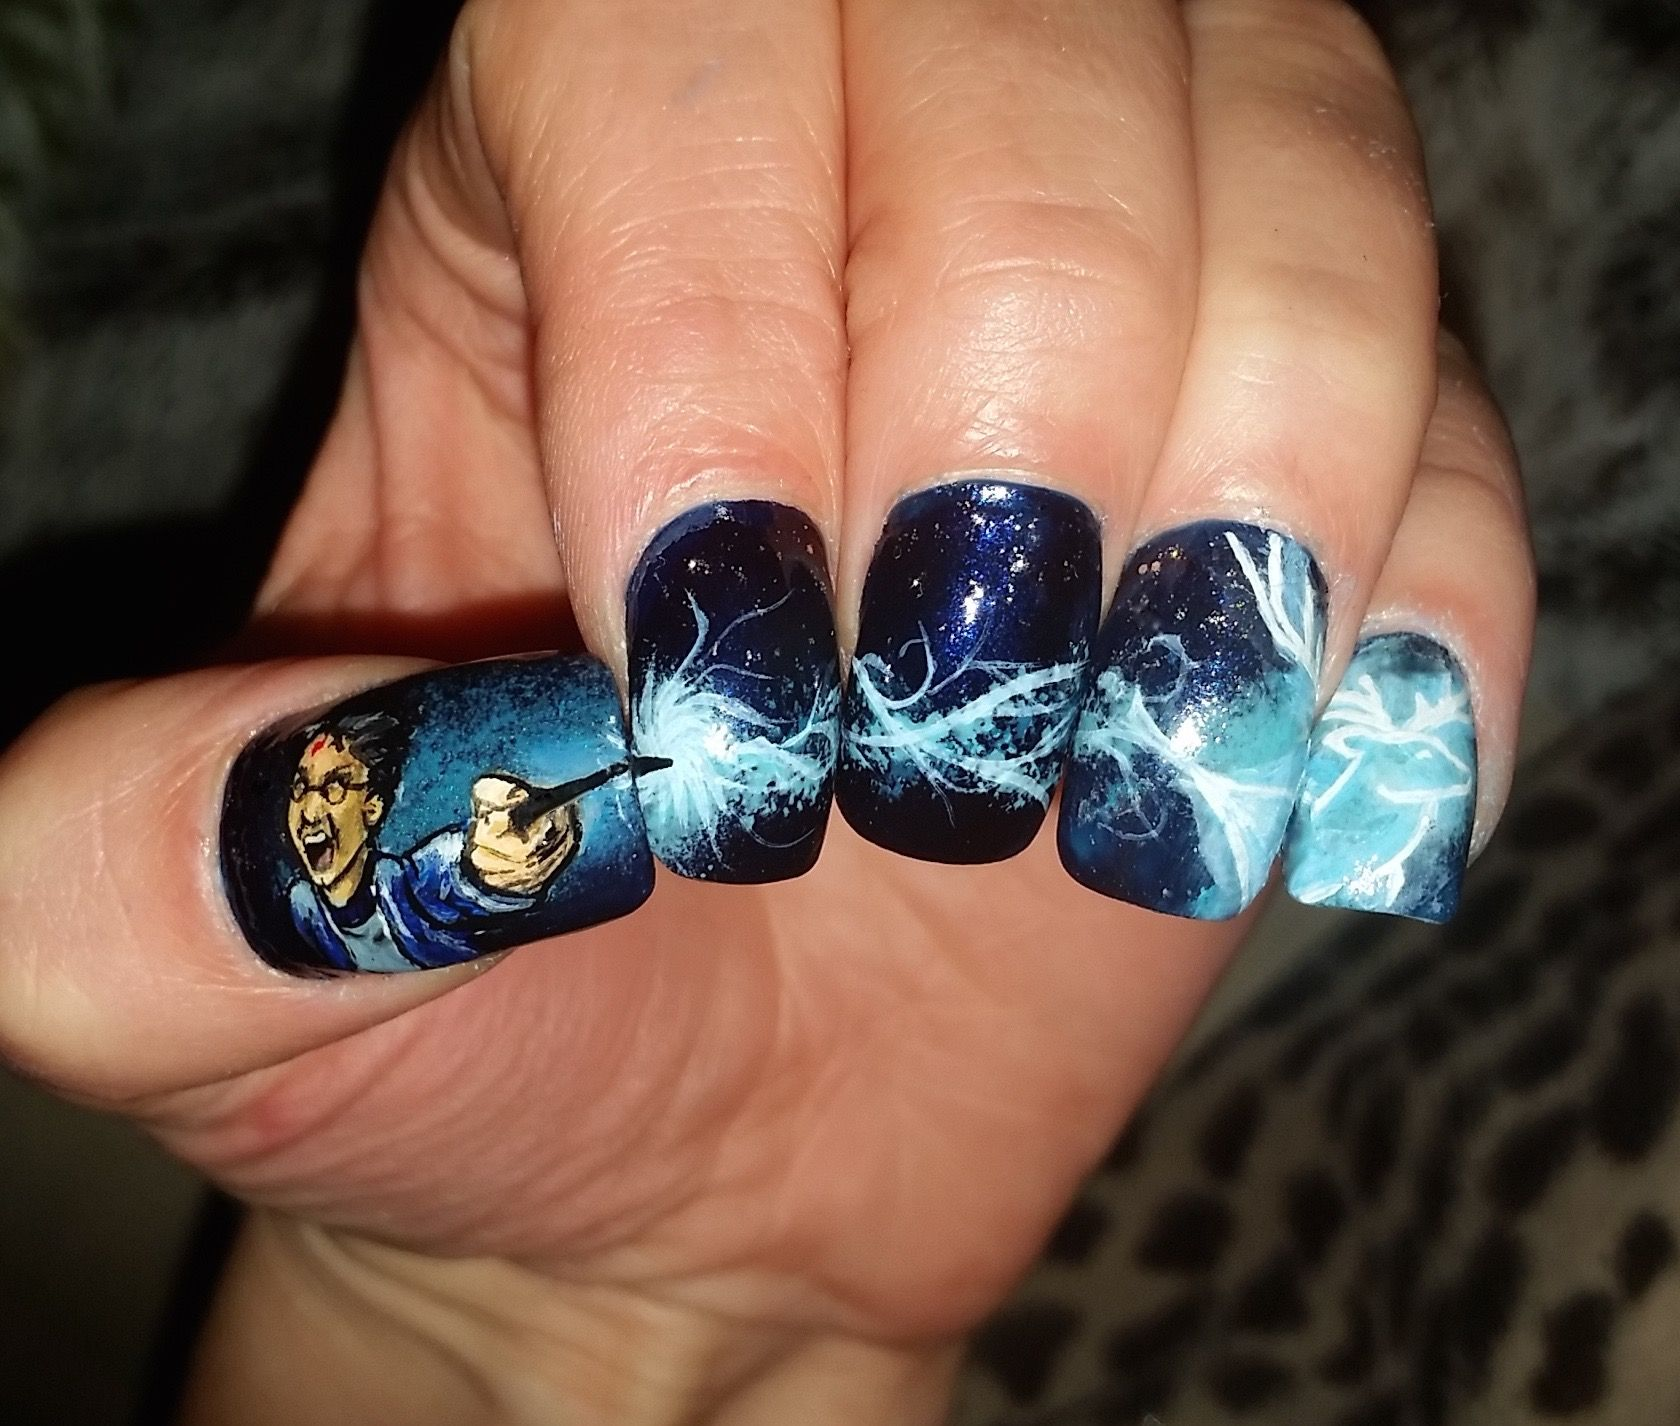 Harry potter expecto patronum nail art video on youtube channel harry potter expecto patronum nail art video on youtube channel sammylovesfossas prinsesfo Images